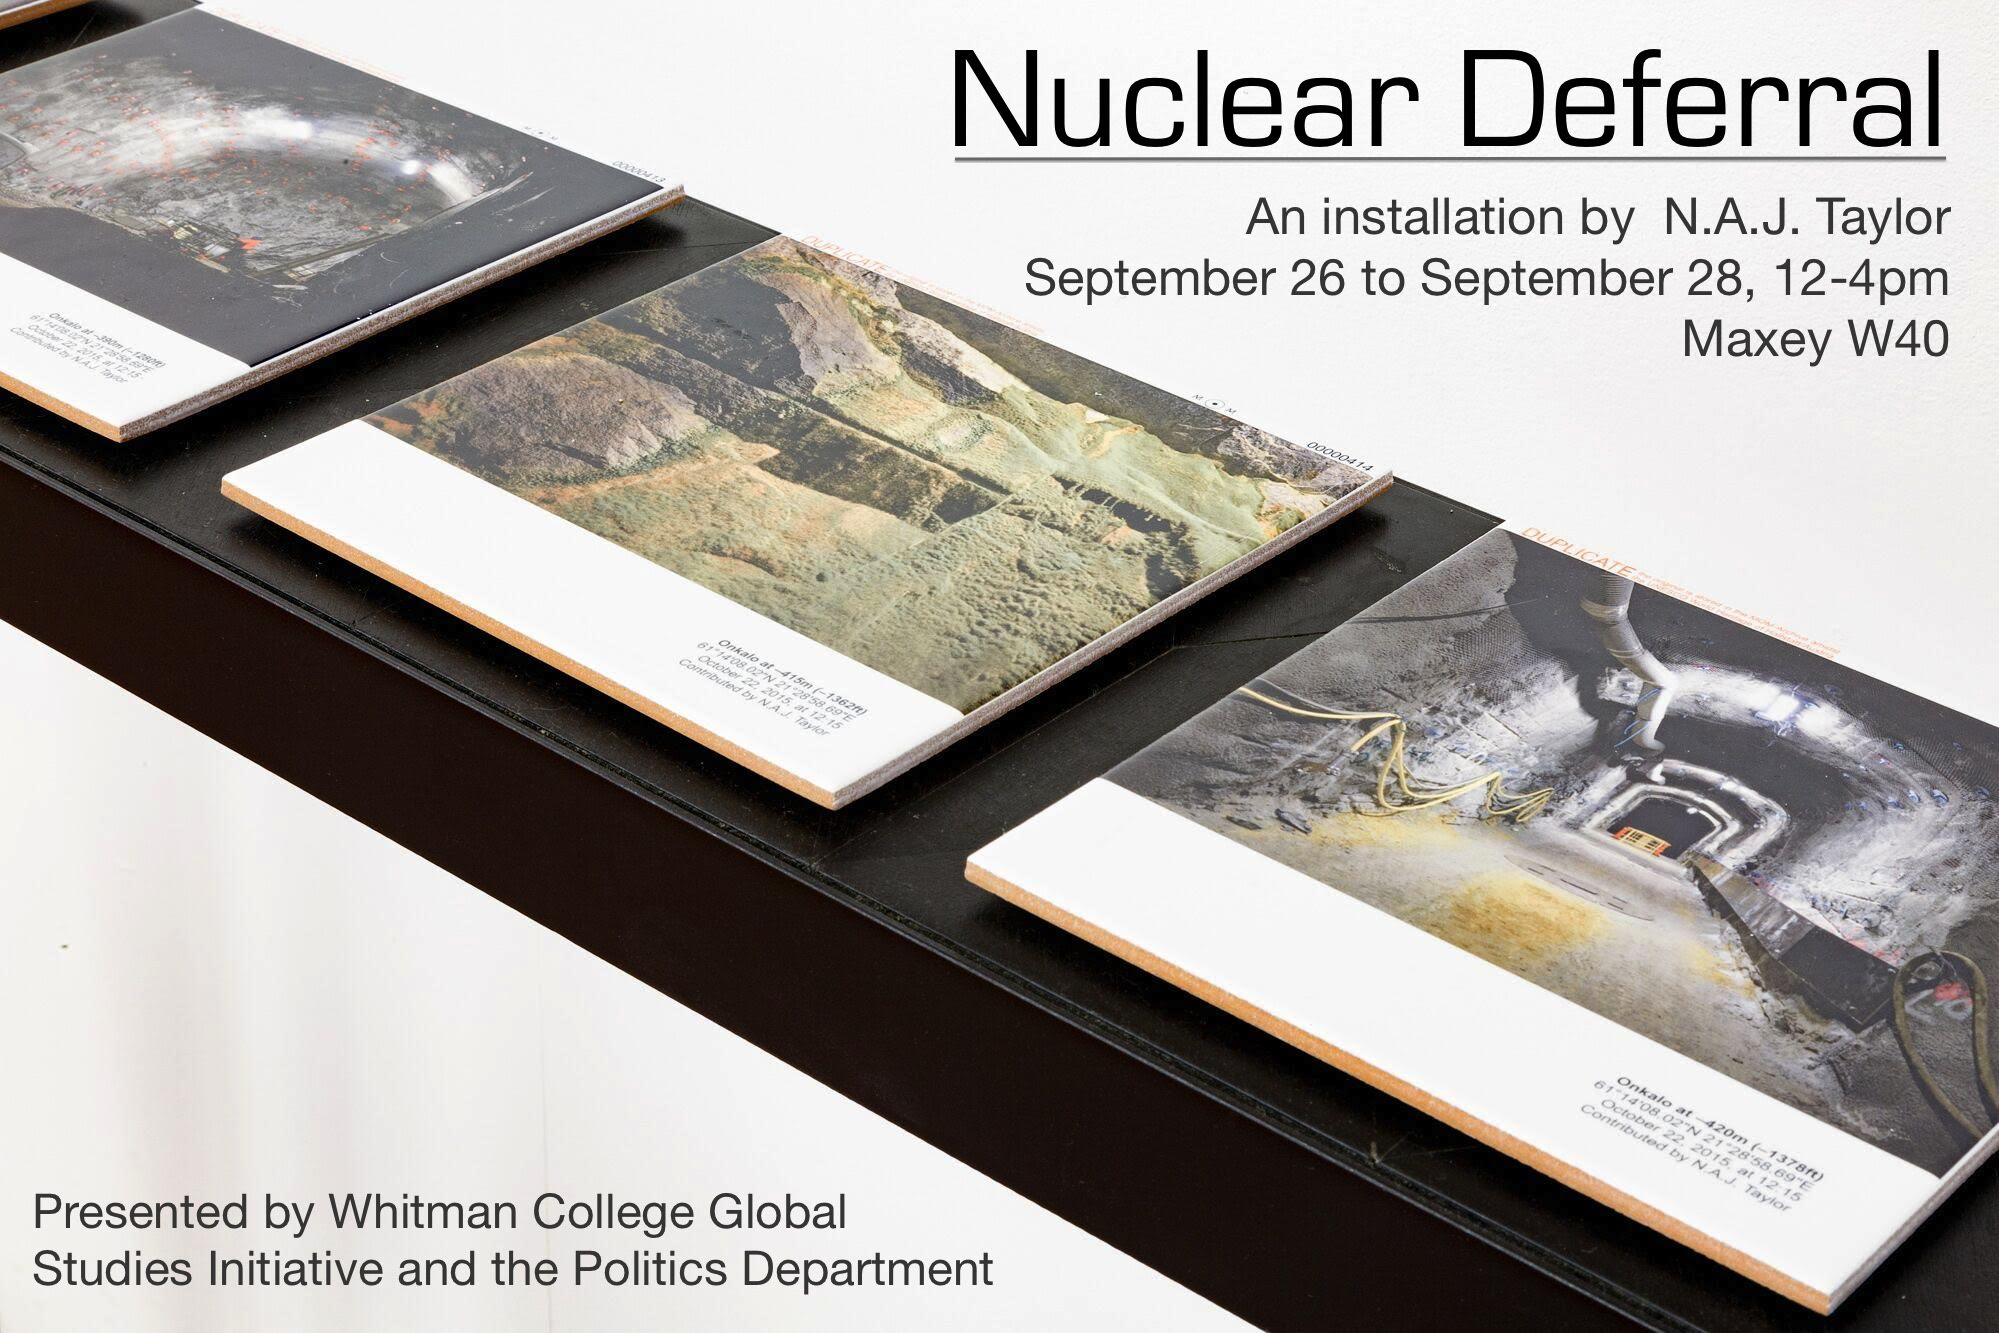 Nuclear Deferral Exhibit Image